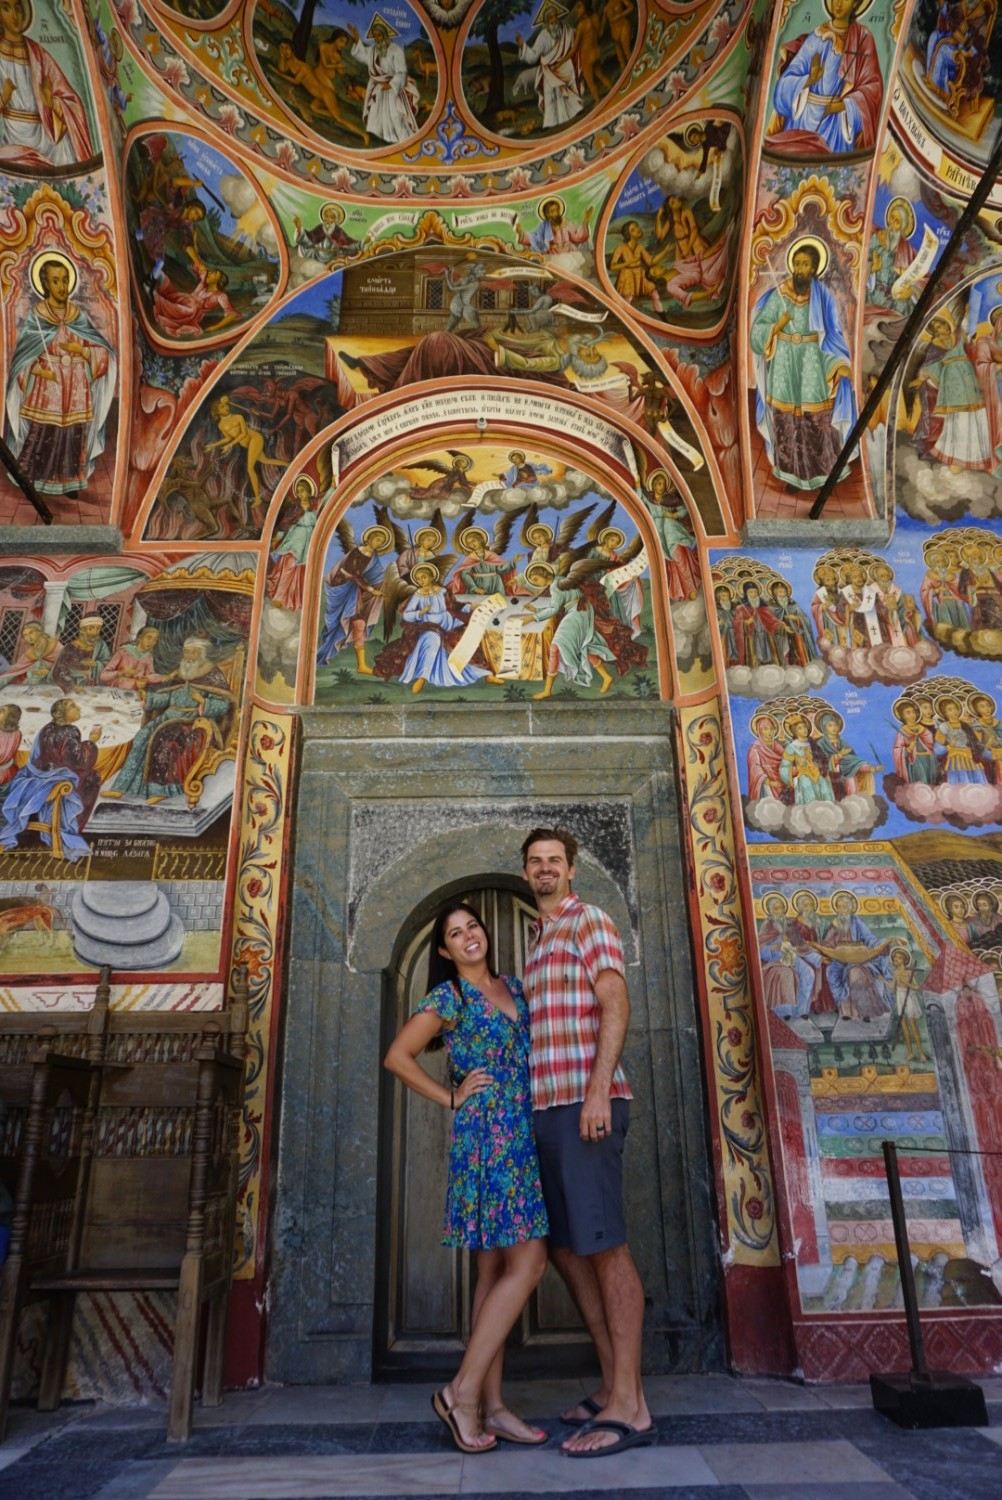 Kelly and Matt of Boldly Go Travel pose for a picture at the beautiful Rila Monastery in Bulgaria.